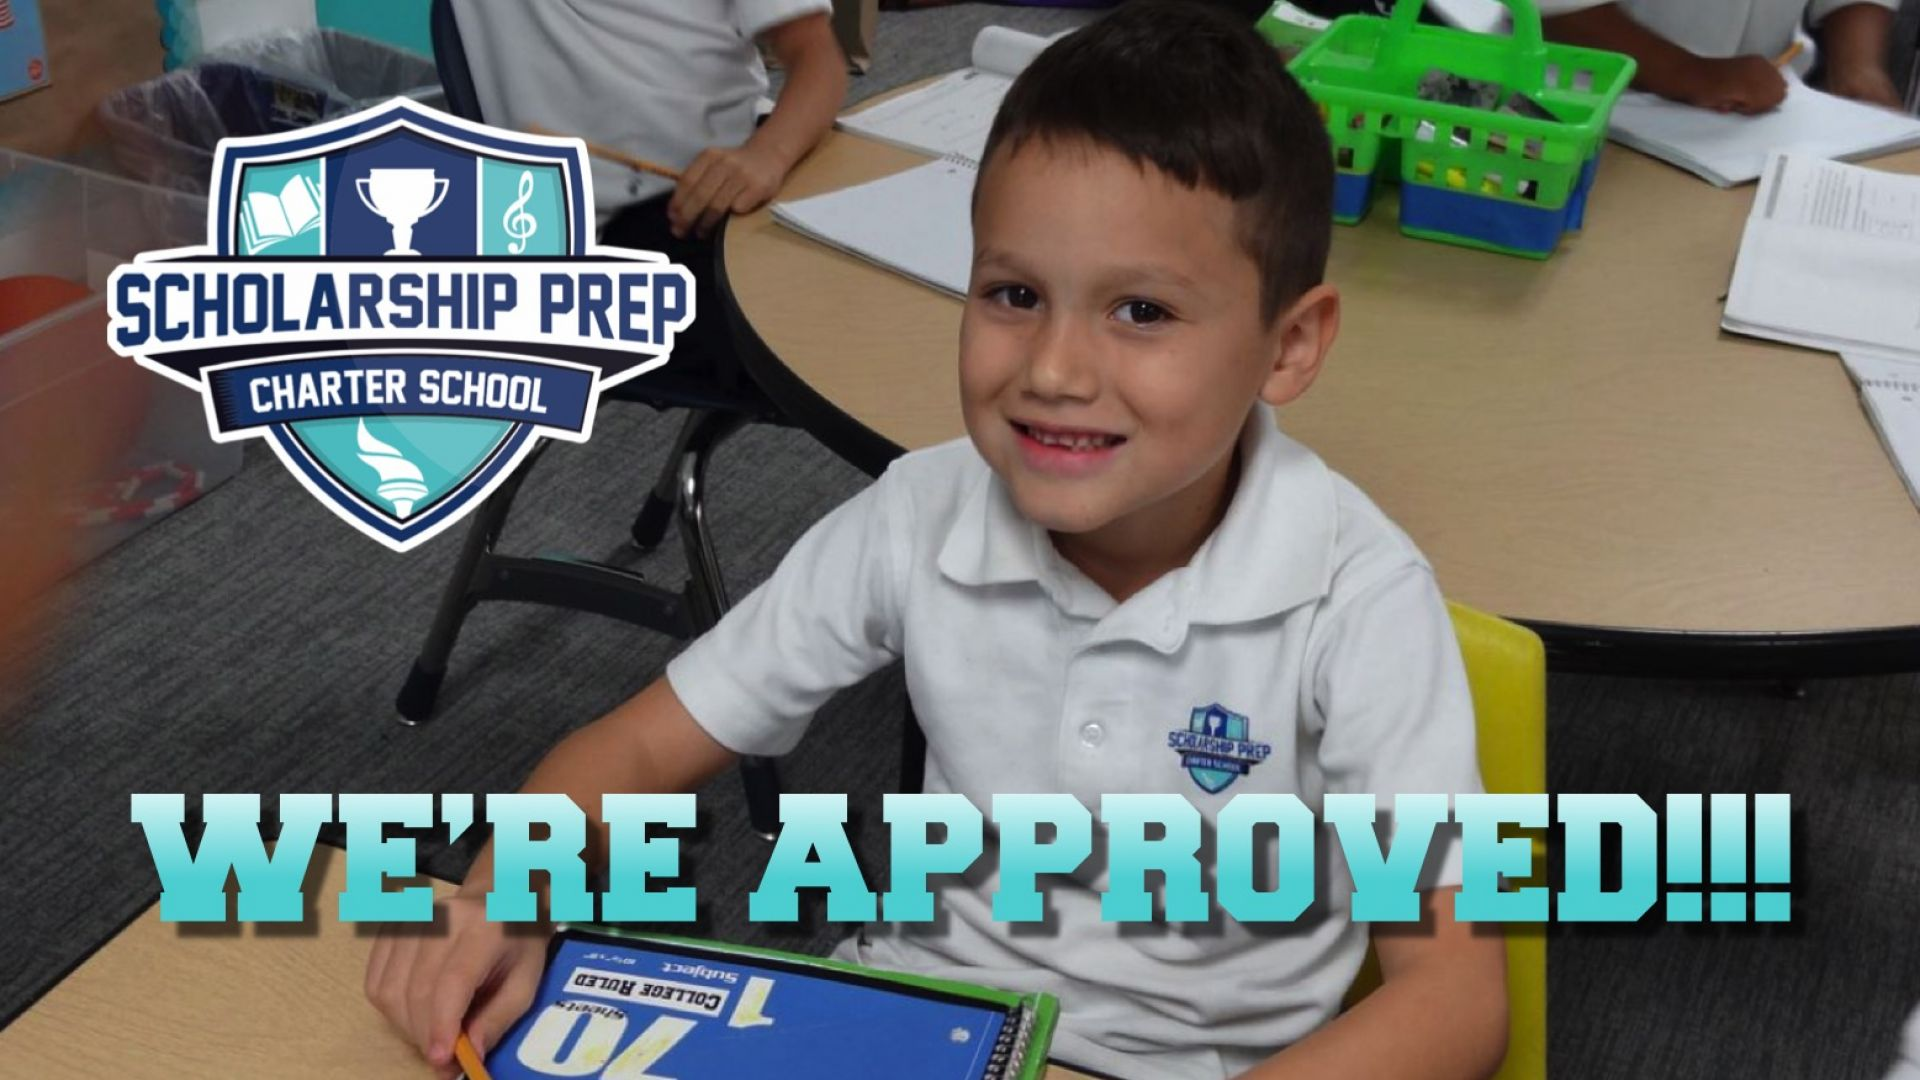 Scholarship Prep is coming to Lomita-Harbor City in 2019!